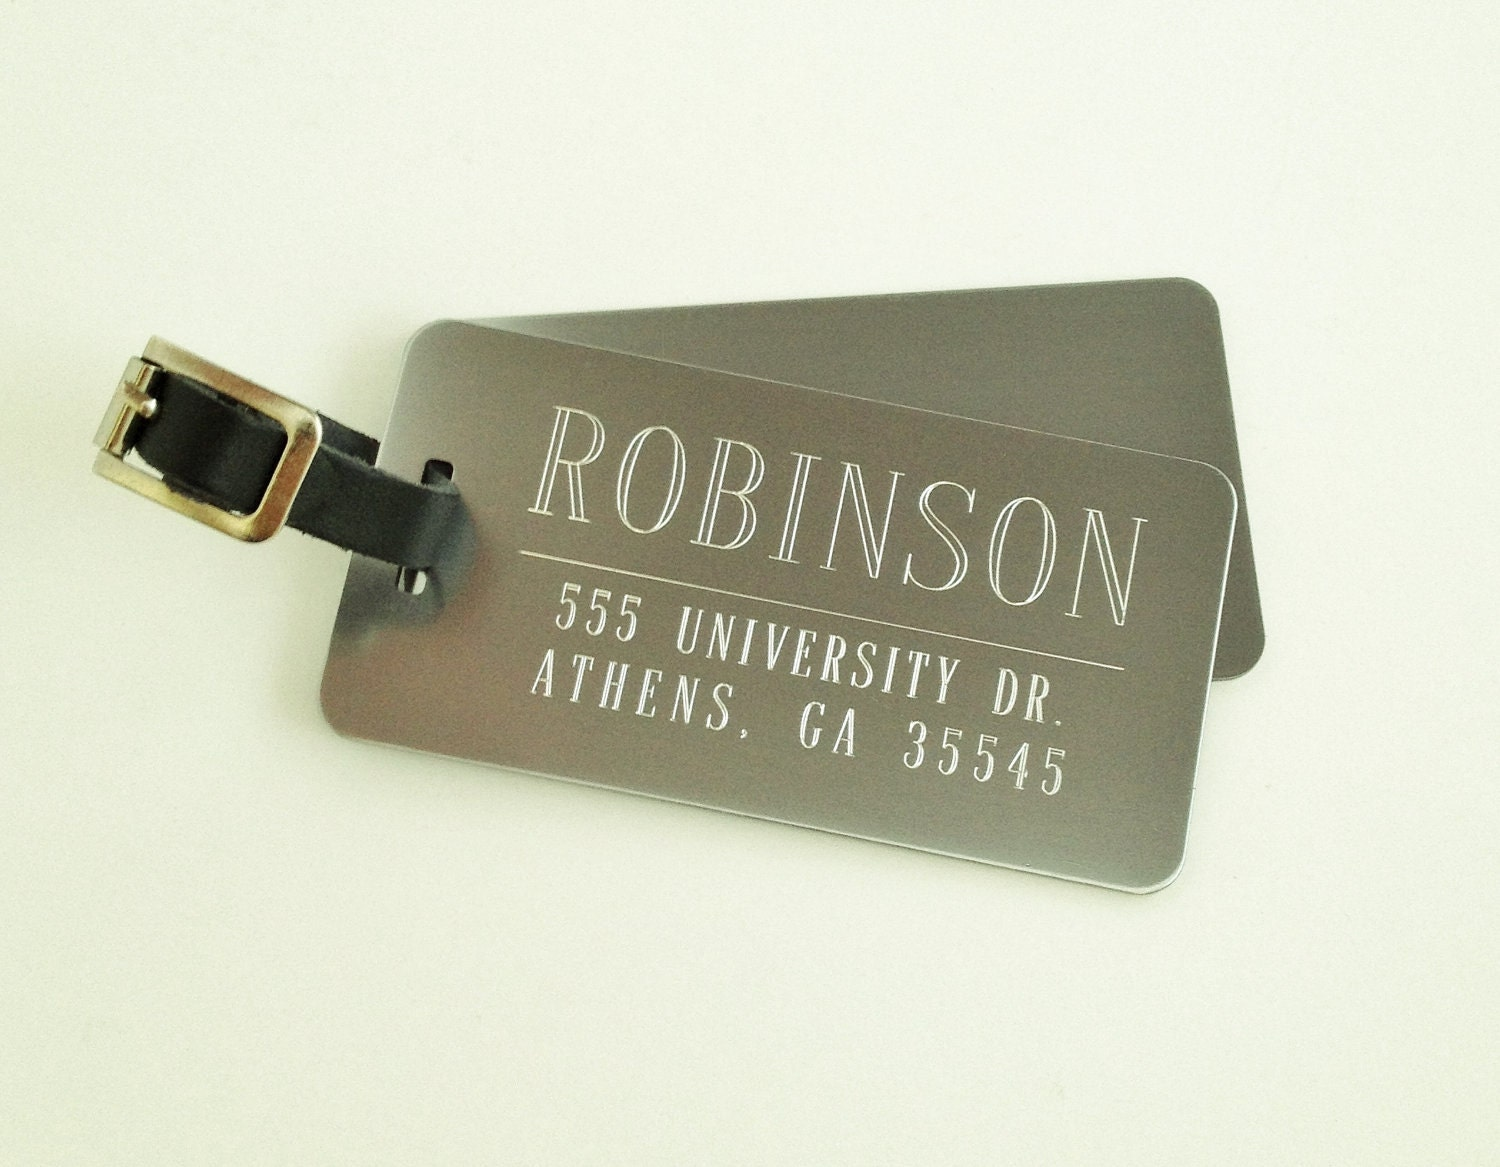 Personalized Luggage Tags Set of Two